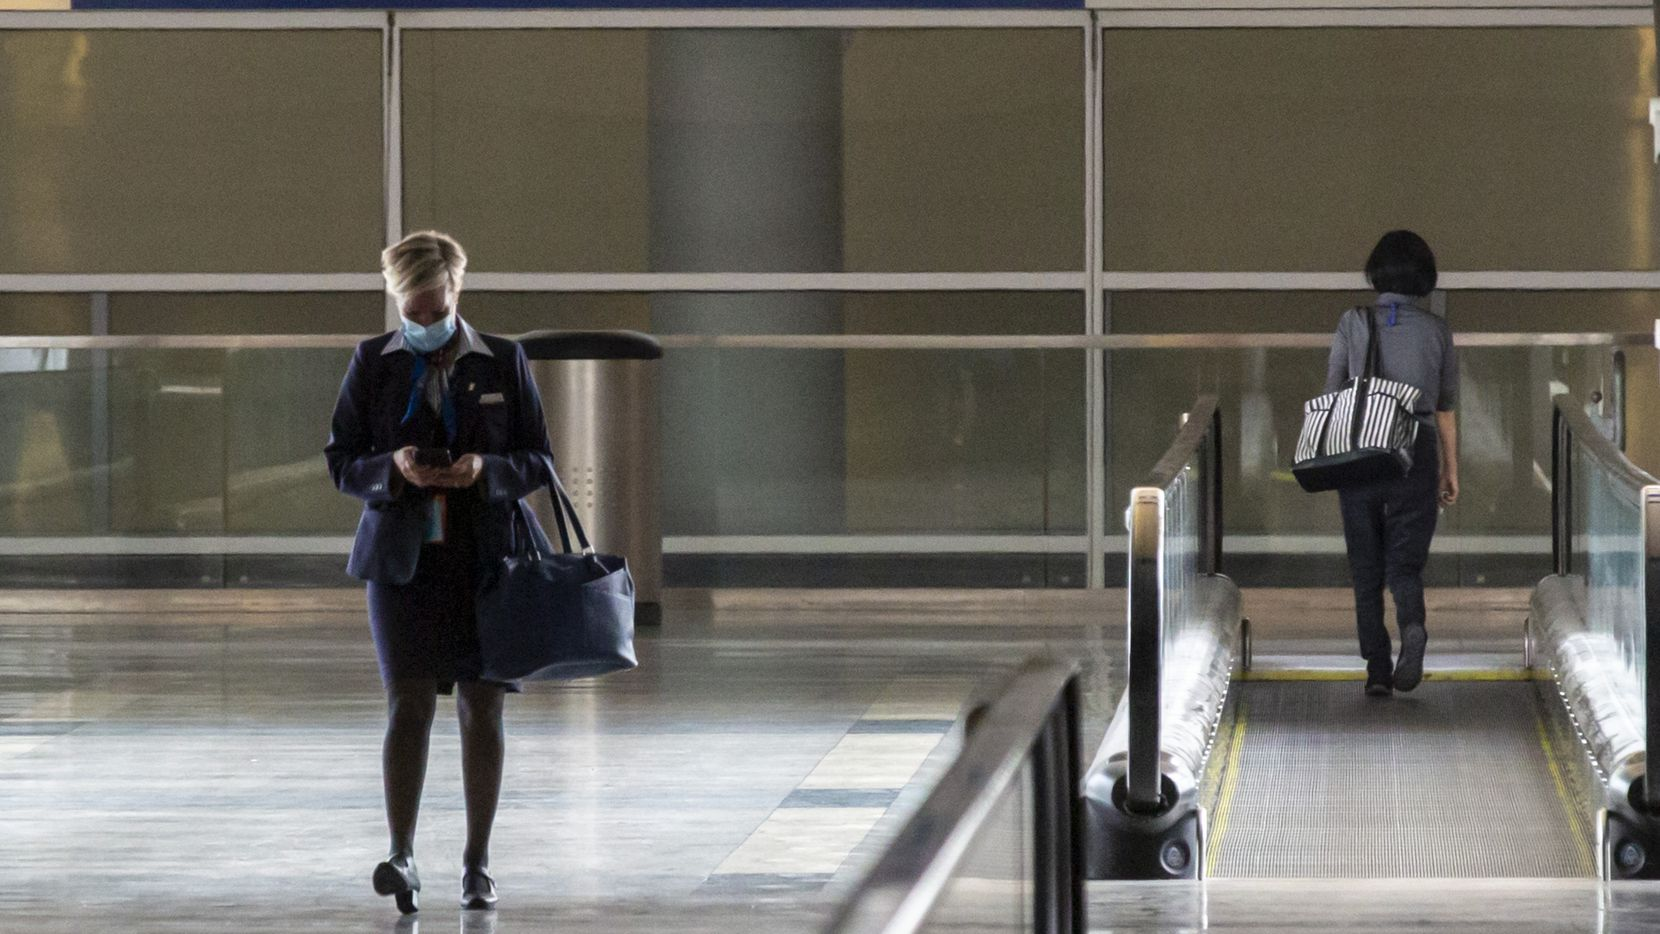 An airlines employee walks out of Terminal D at DFW International Airport in Irving, Texas, on Sunday, July 26, 2020. (Lynda M. Gonzalez/The Dallas Morning News)